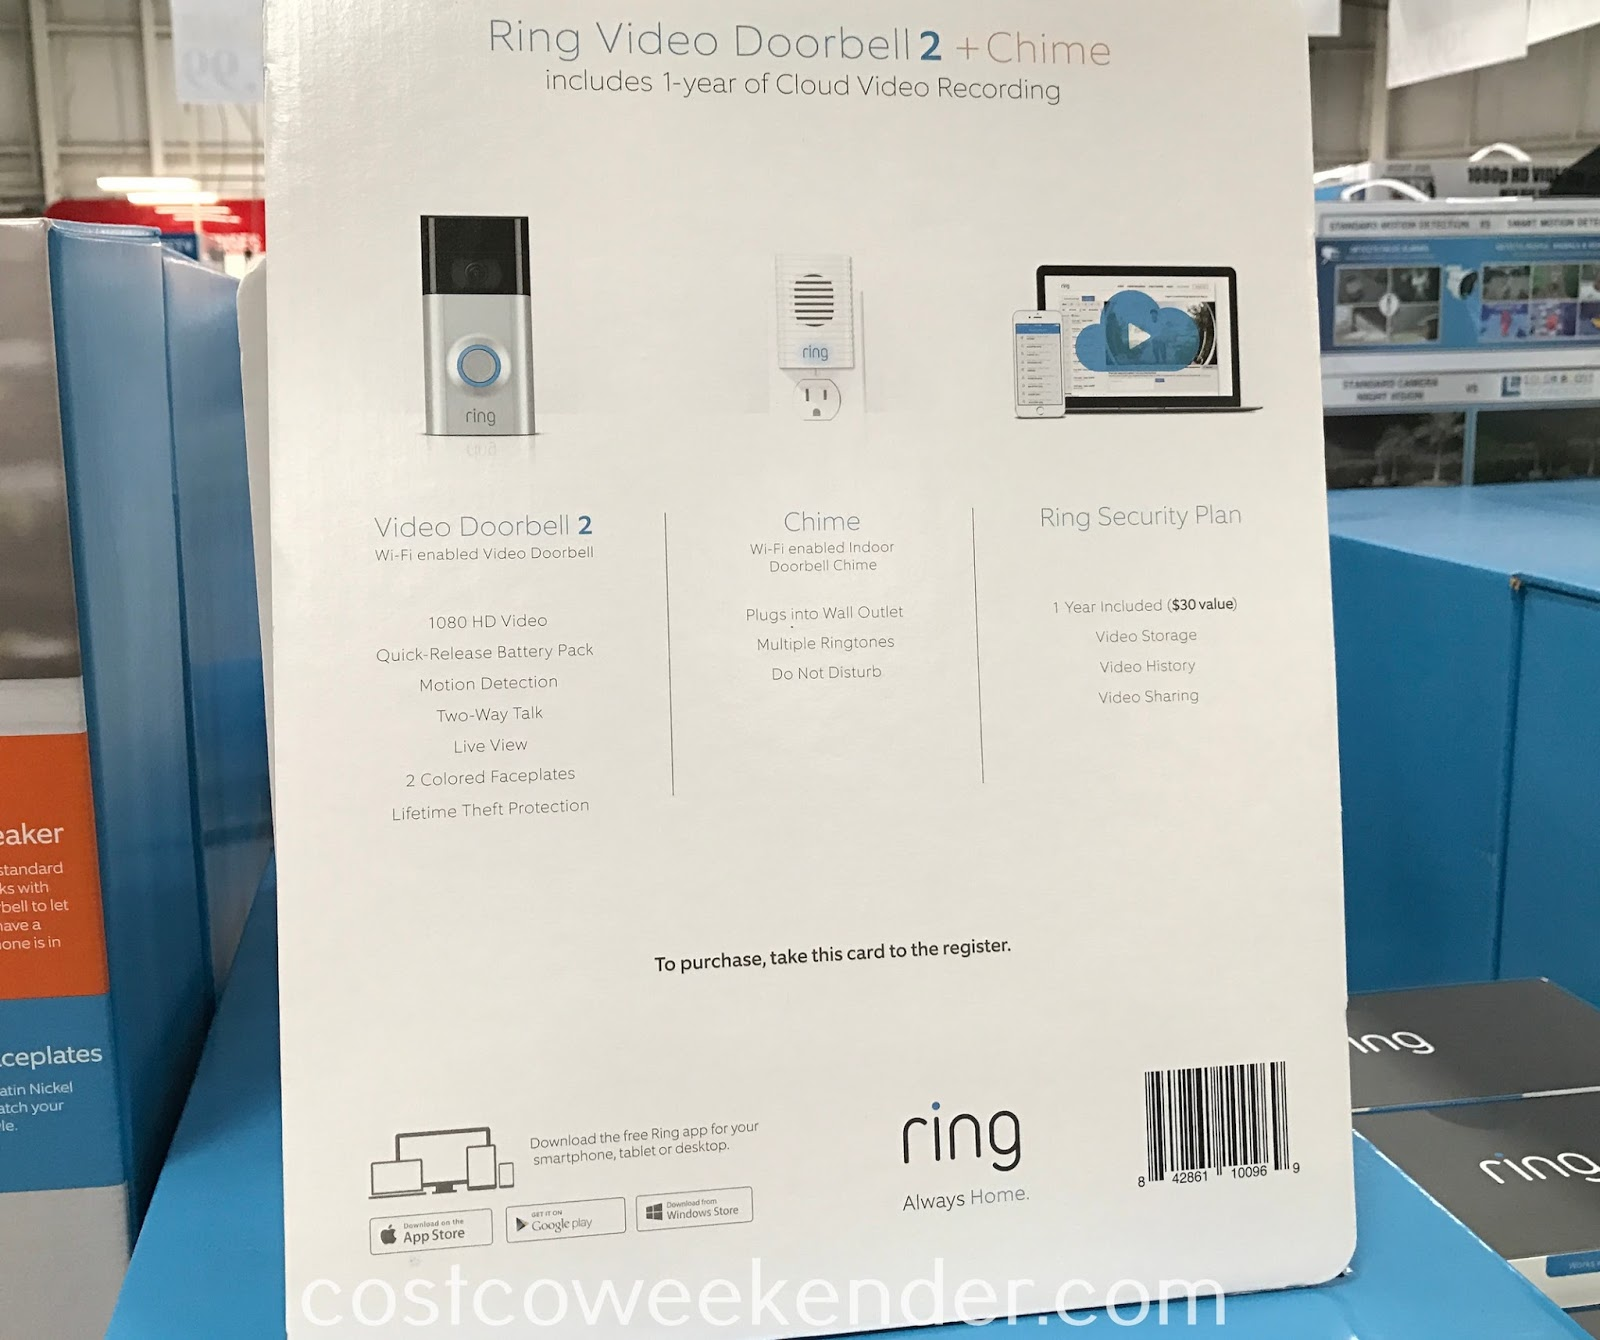 Costco 1179073 - Ring Video Doorbell 2 + Chime: great for any home